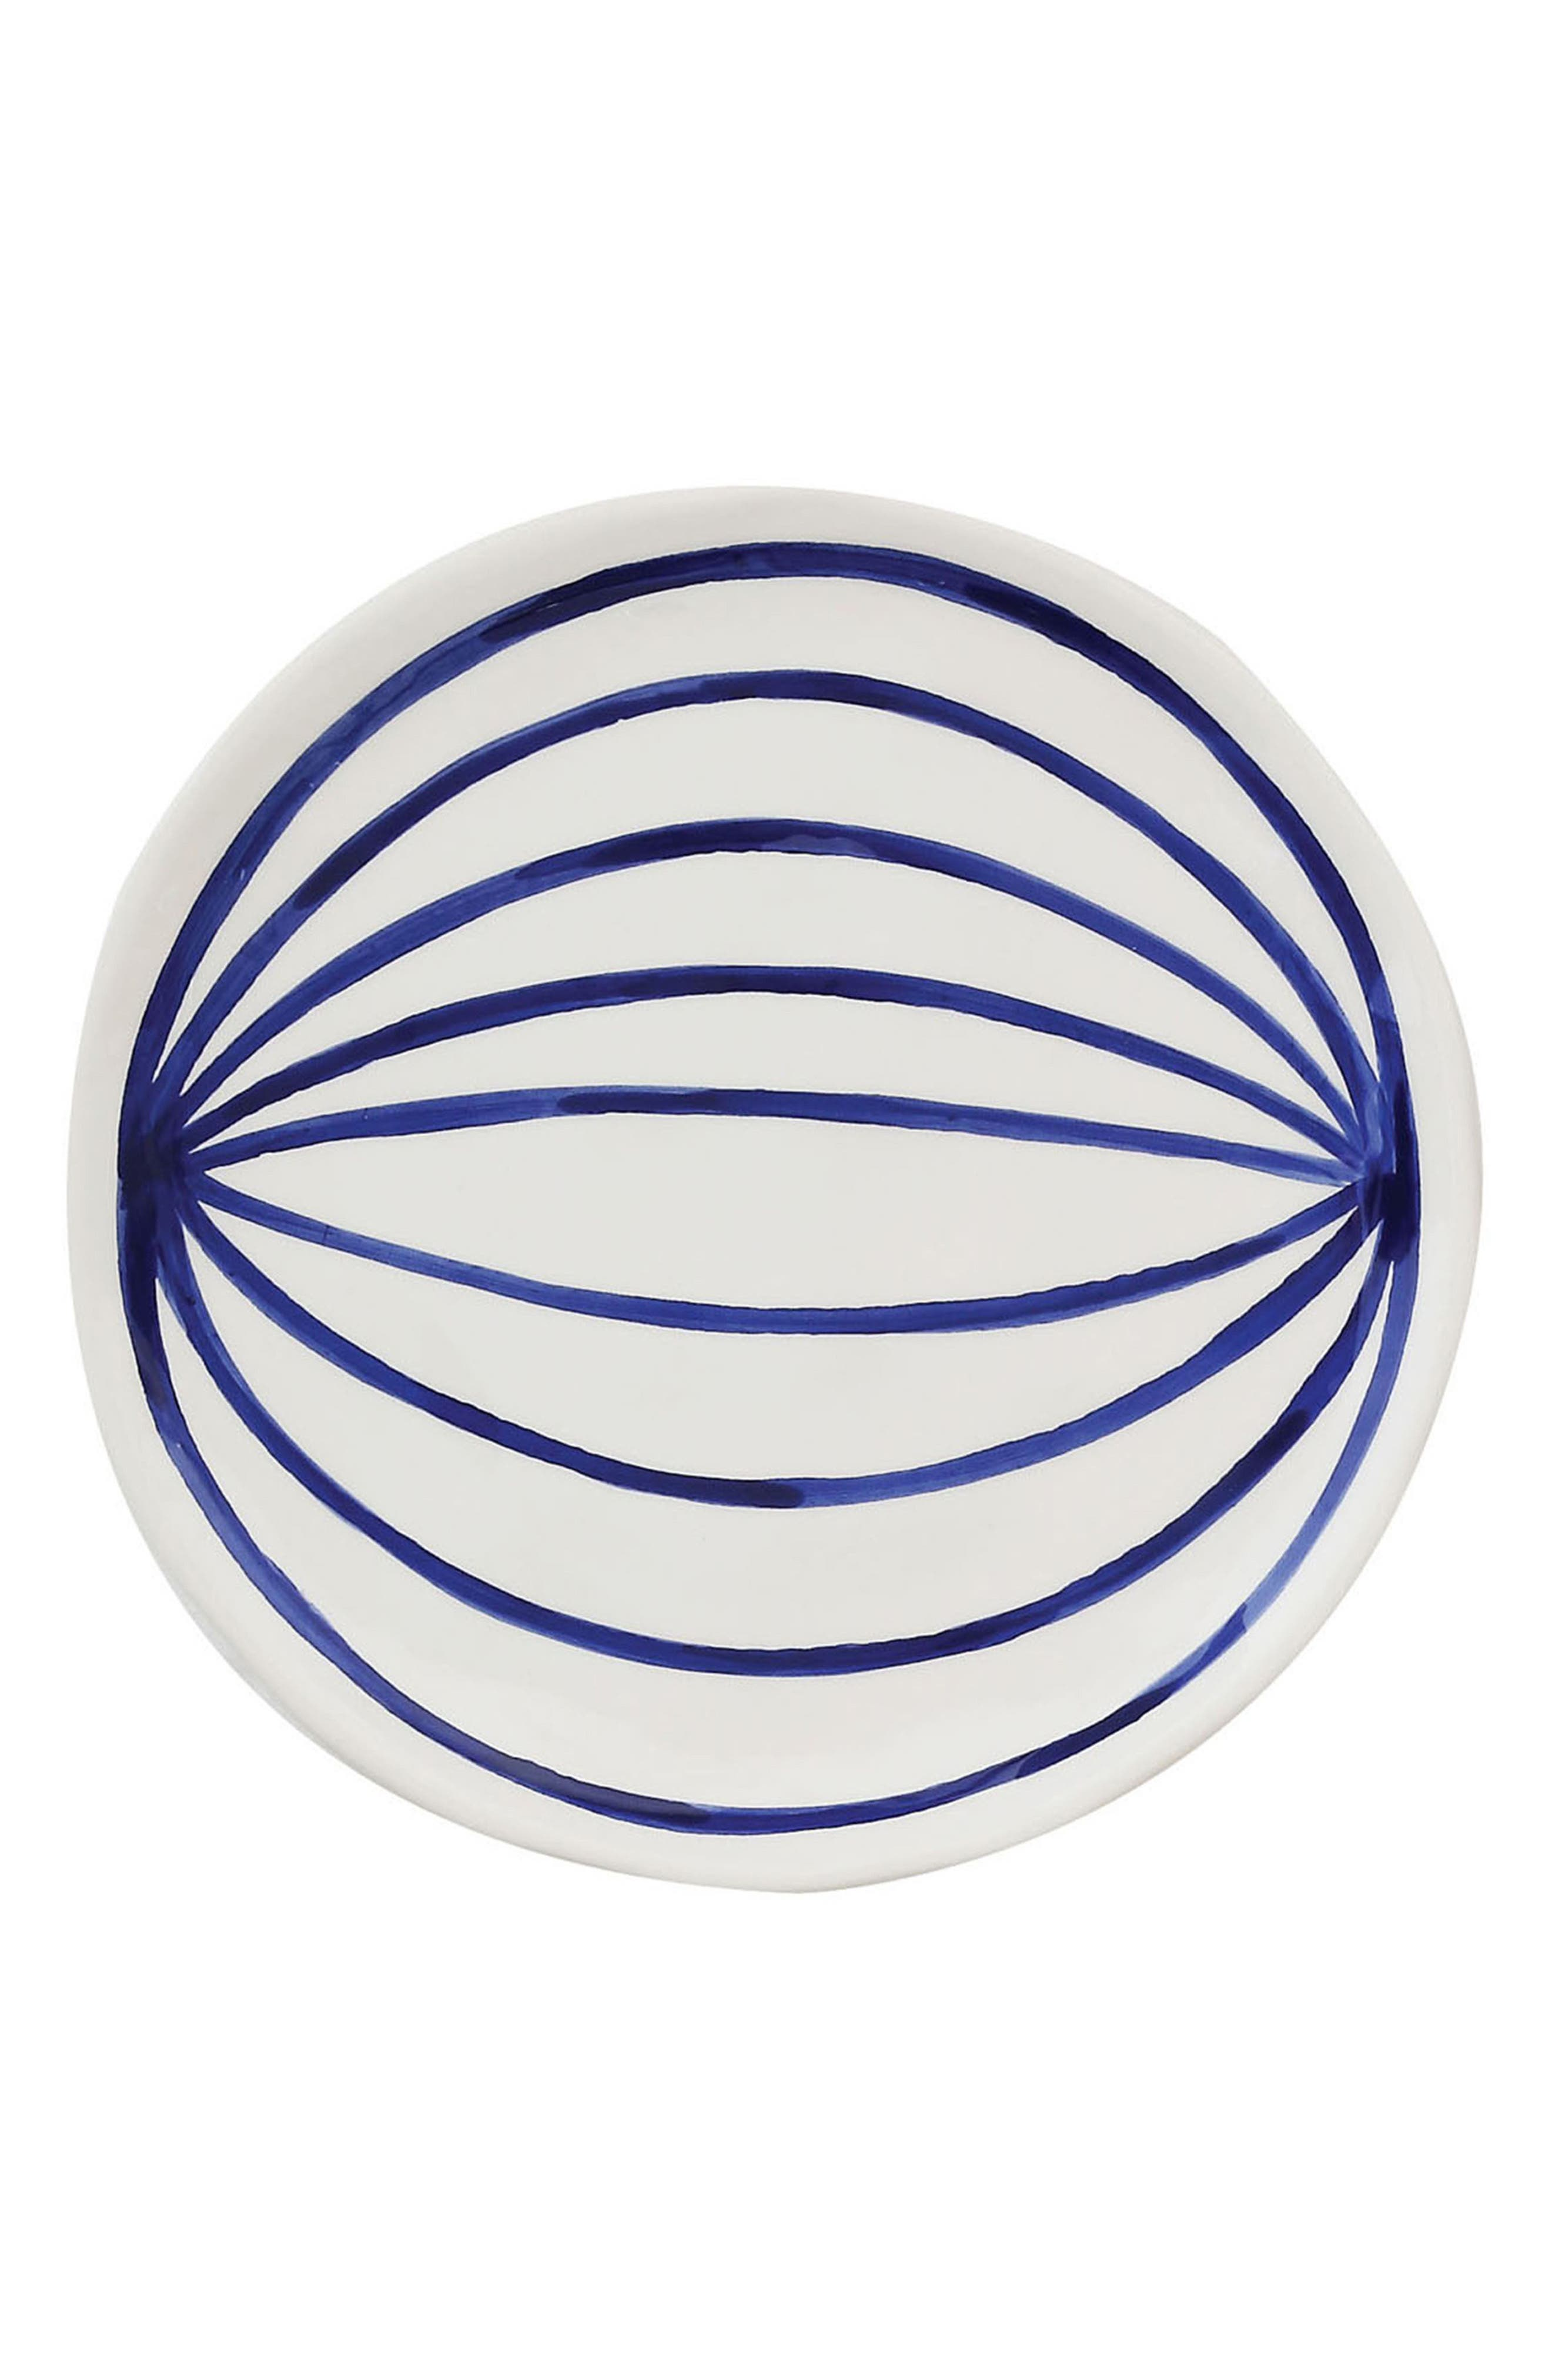 Hand Painted Ceramic Plate,                         Main,                         color, 400